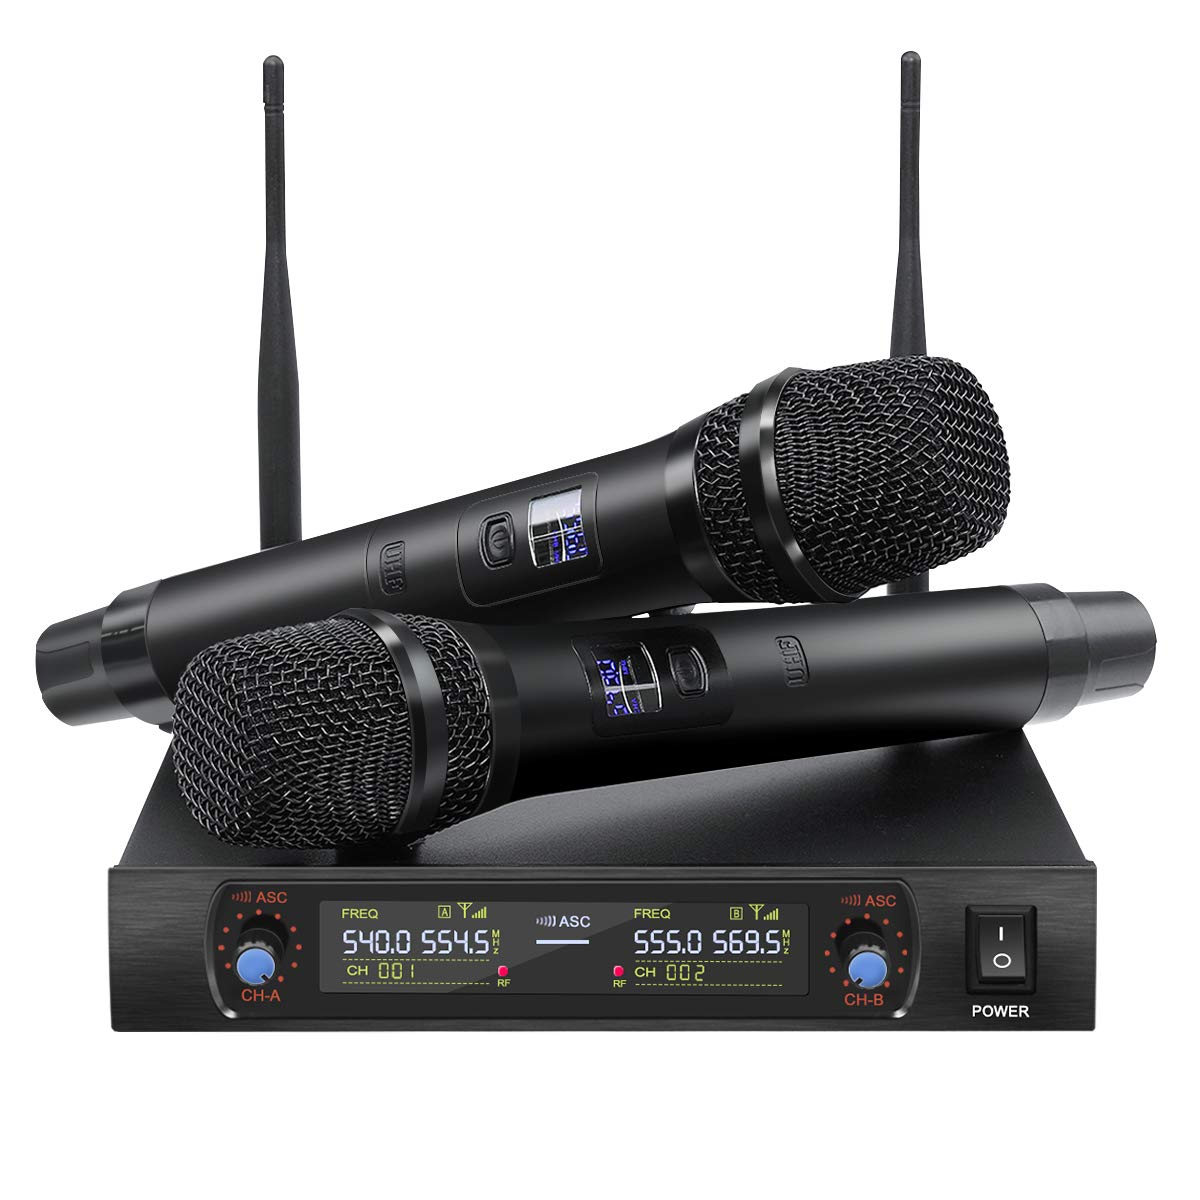 Top 8 Best Wireless Microphone For Tour Guide In Car - Buyer's Guide 8